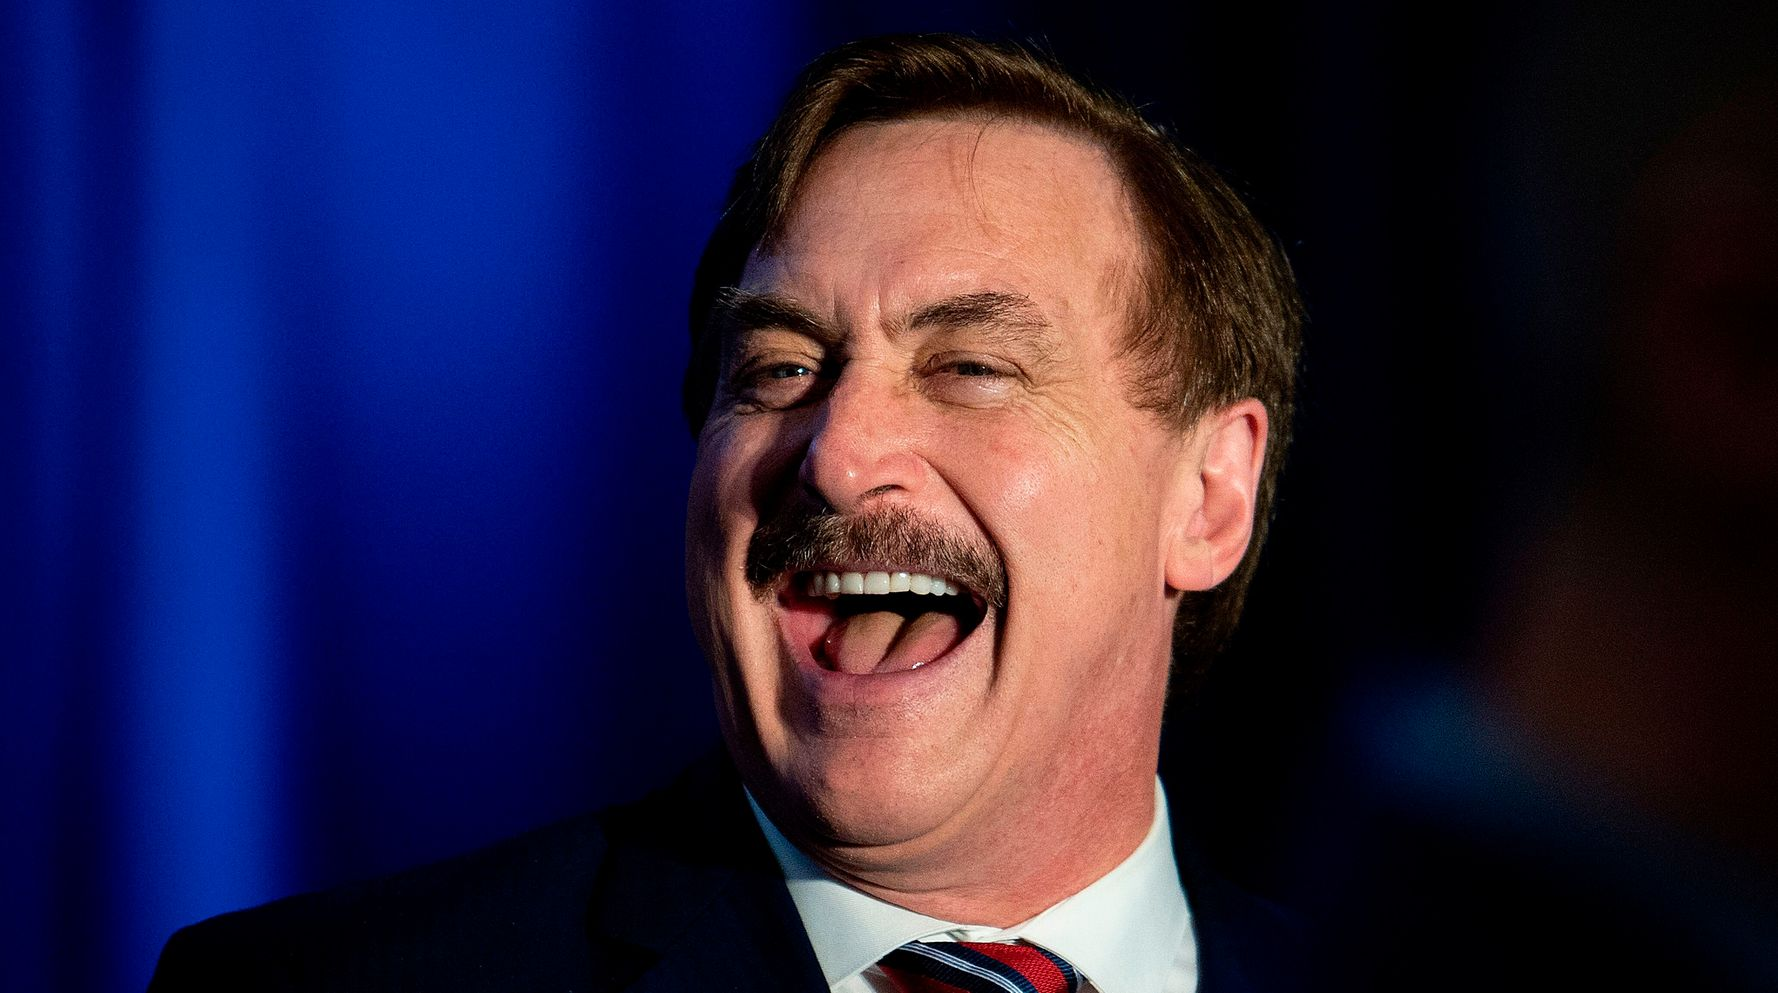 Mike Lindell Confirms He Has No Understanding Of U.S. Constitution